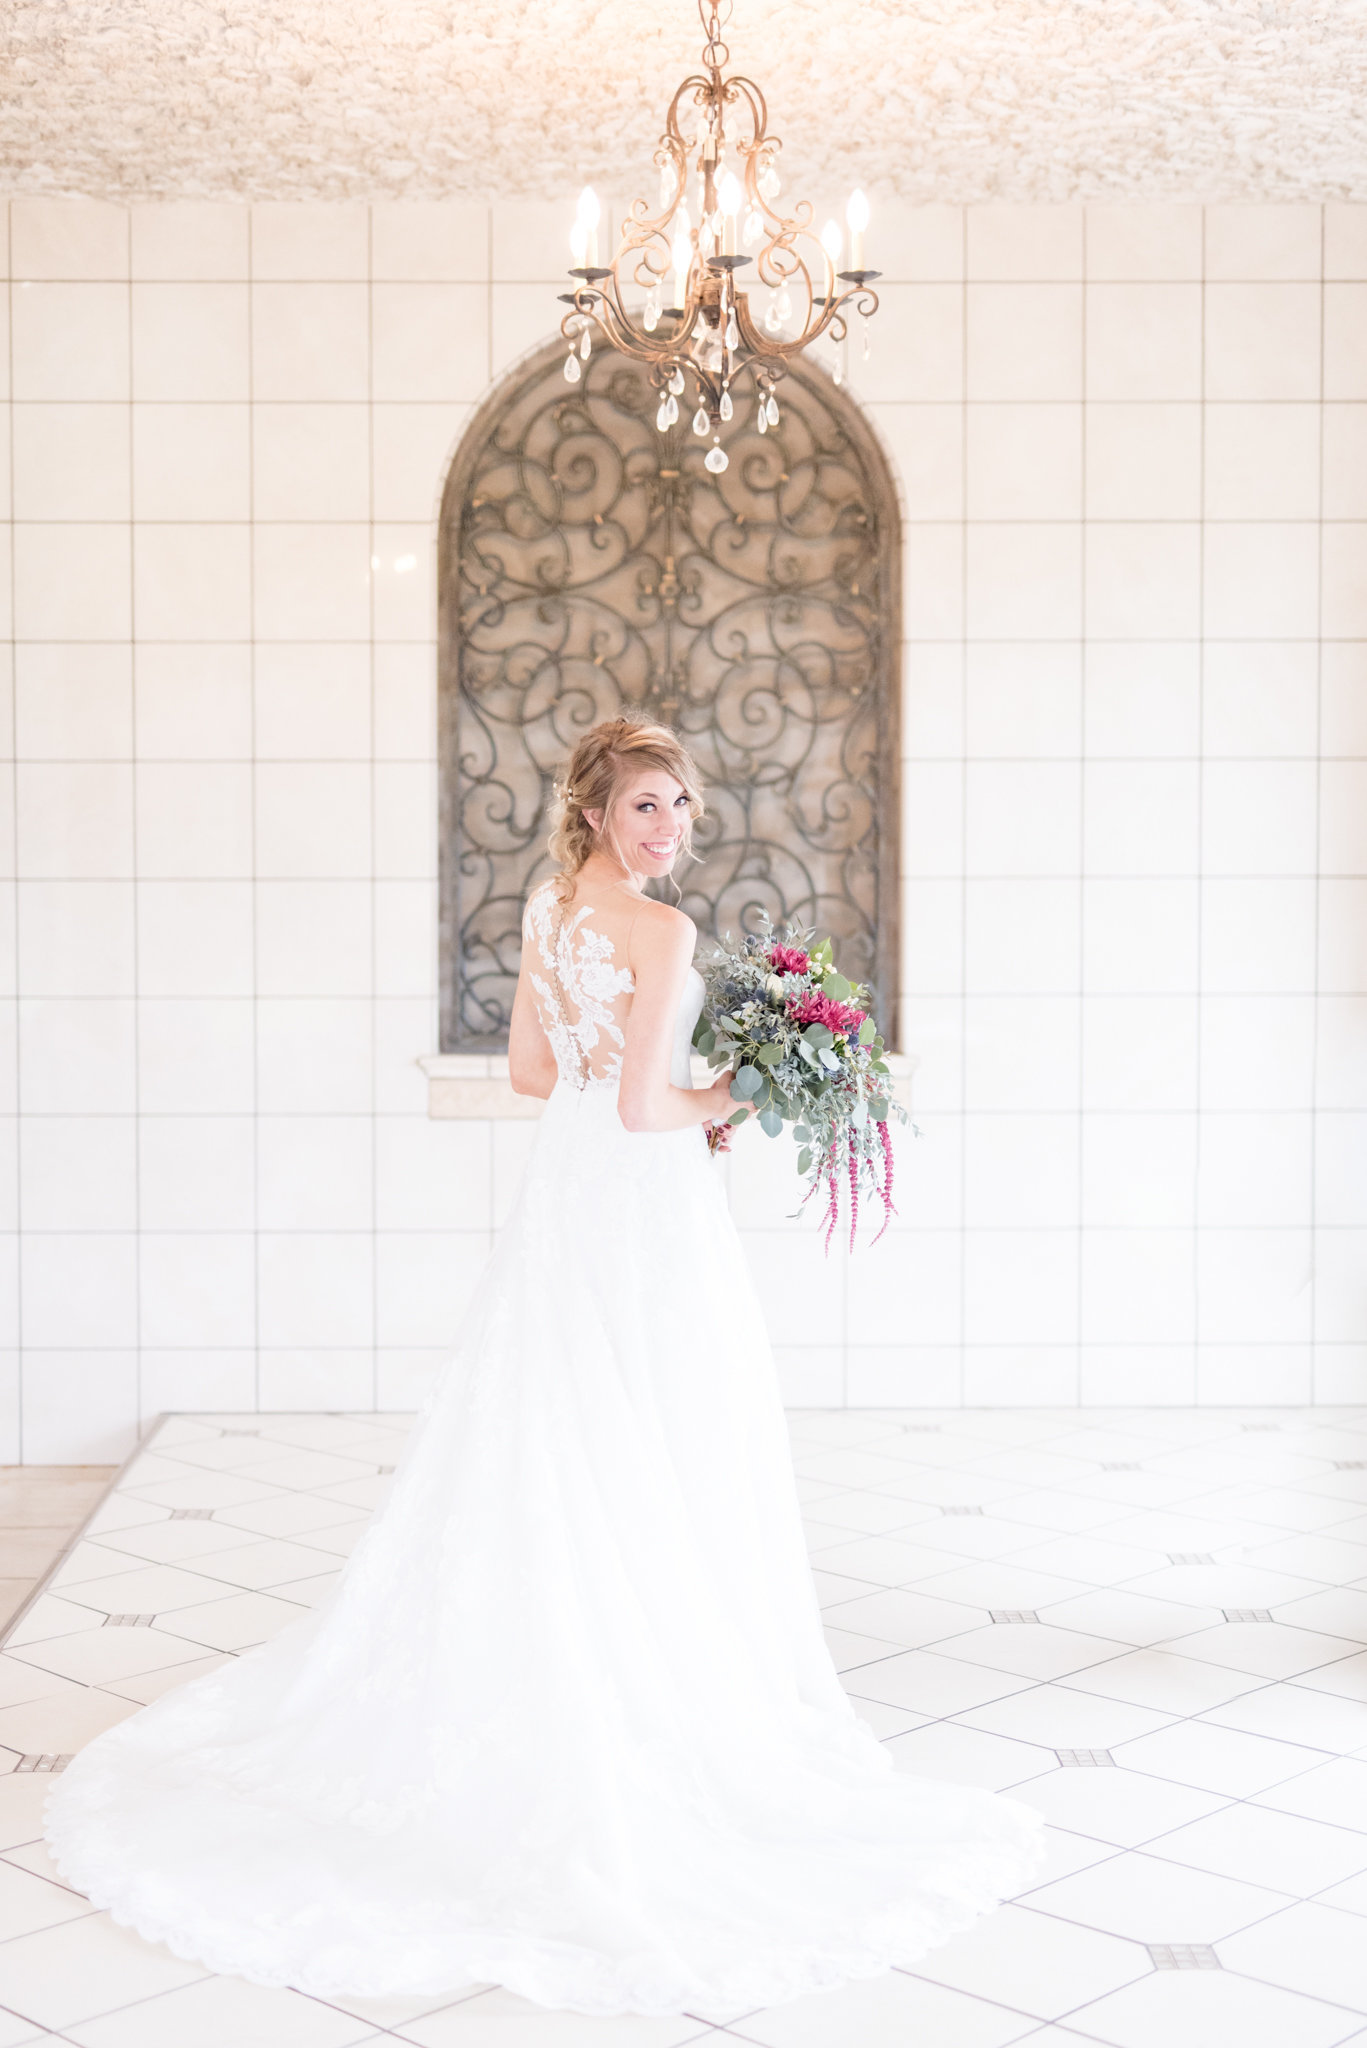 Bride looks at camera under chandelier.